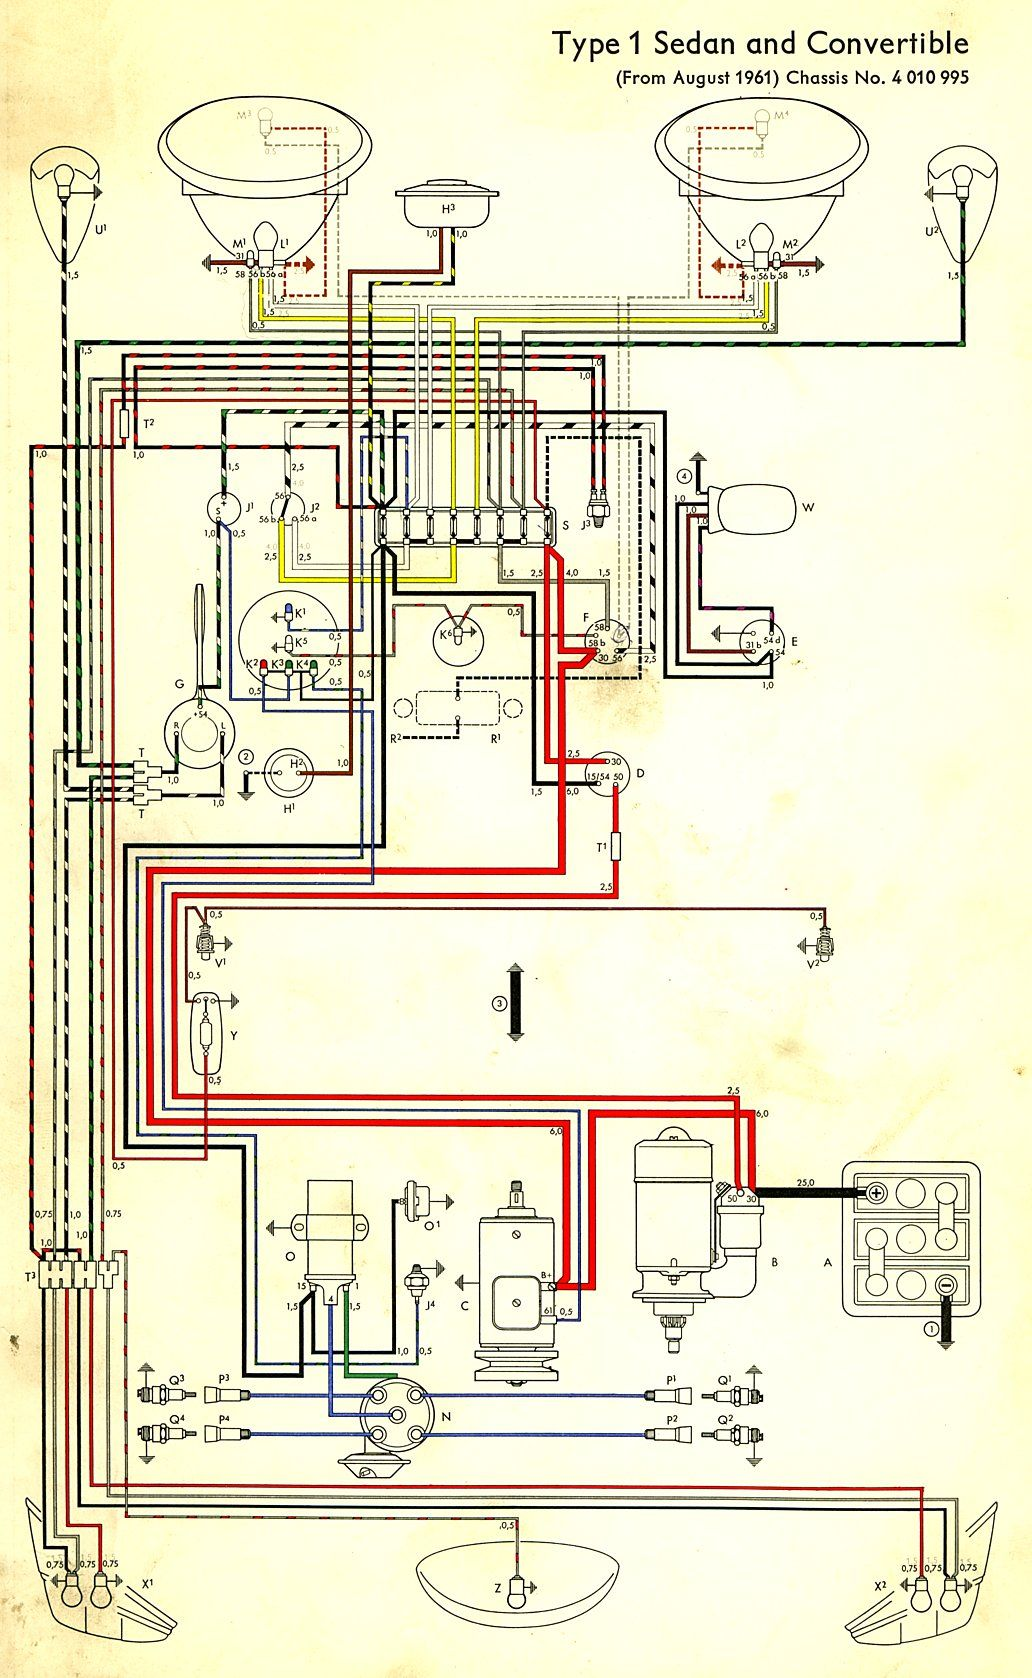 wiring diagram 1957 chevy 1967 vw beetle wiring diagram in color. 1964 vw bug, beetle, convertible ... 1967 vw beetle wiring harness #2